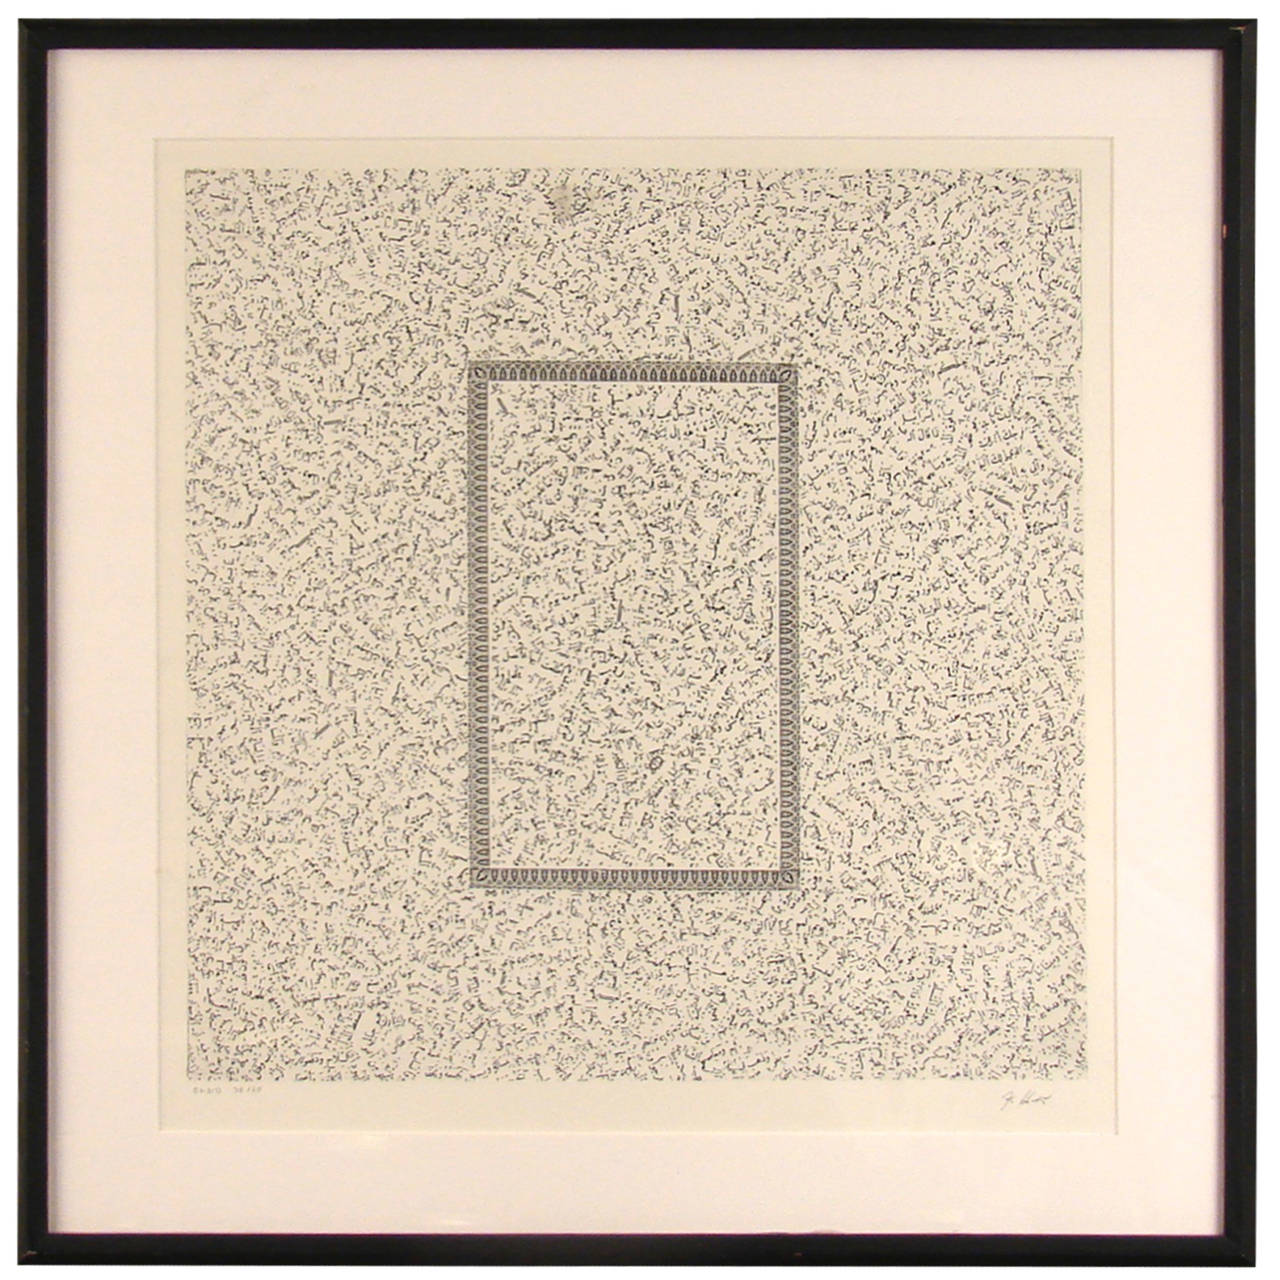 Jiri Kolar Abstract Etching on Paper, Framed 1